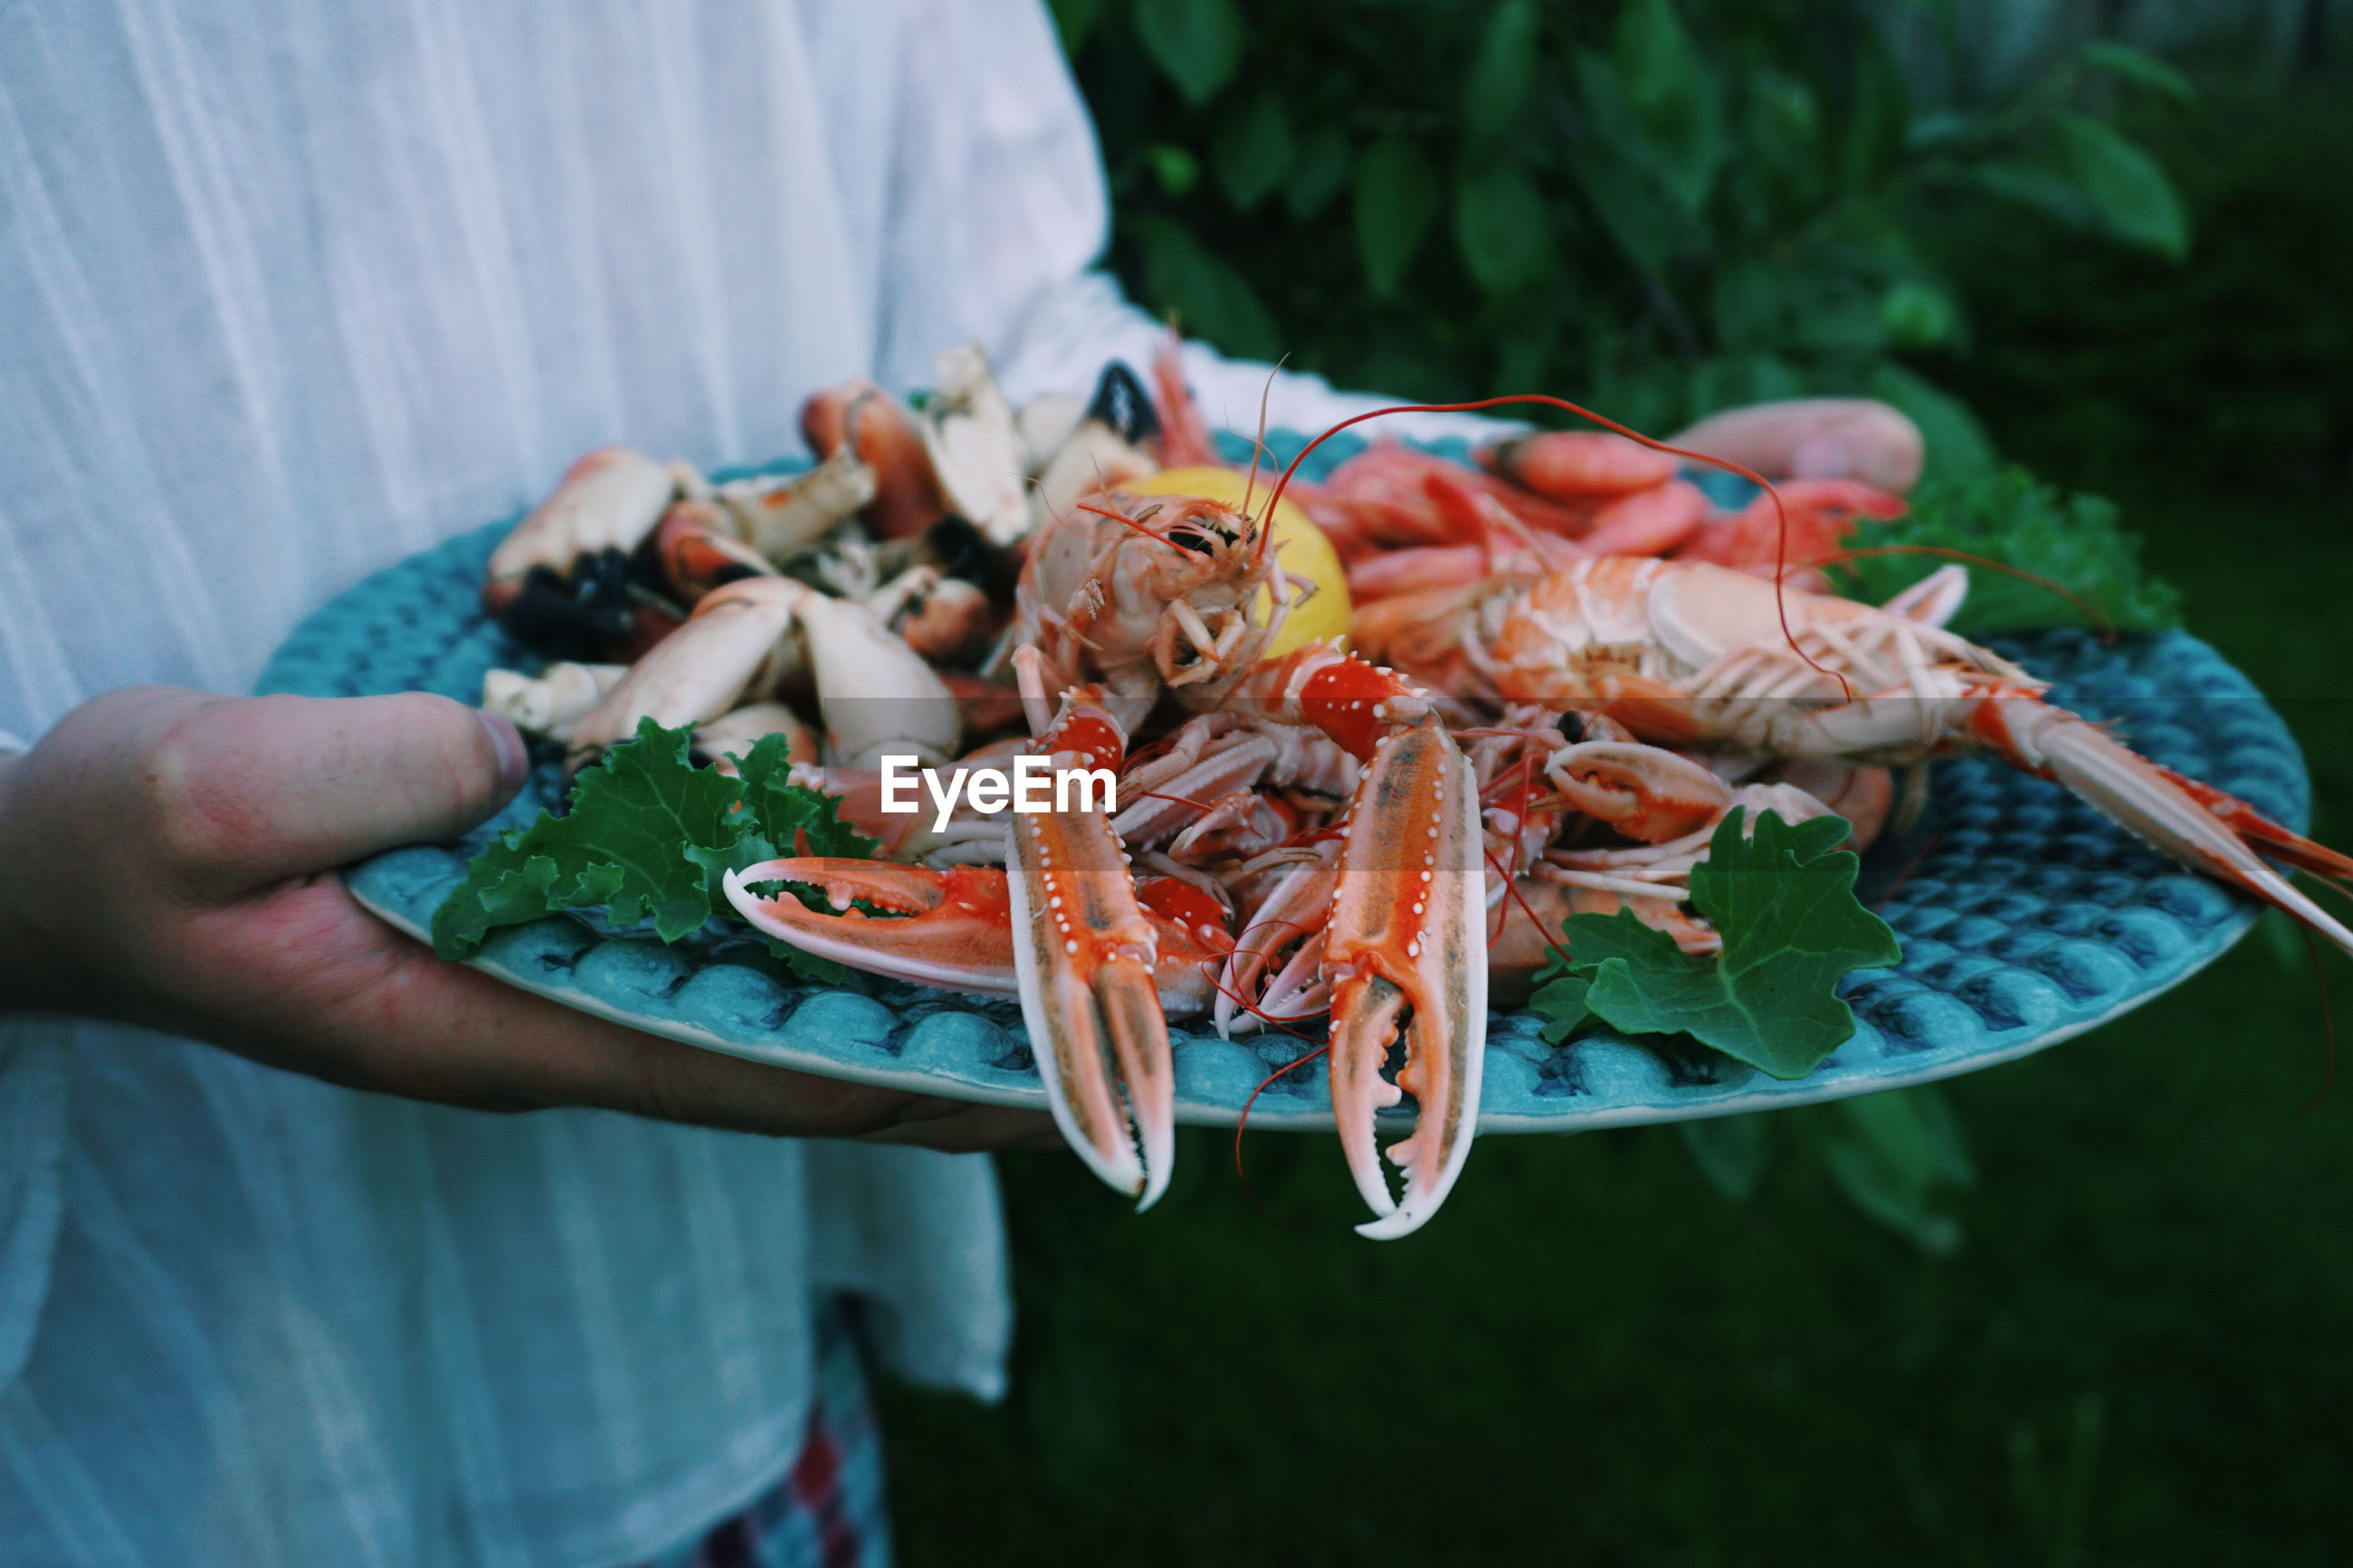 Midsection of woman holding seafood in plate